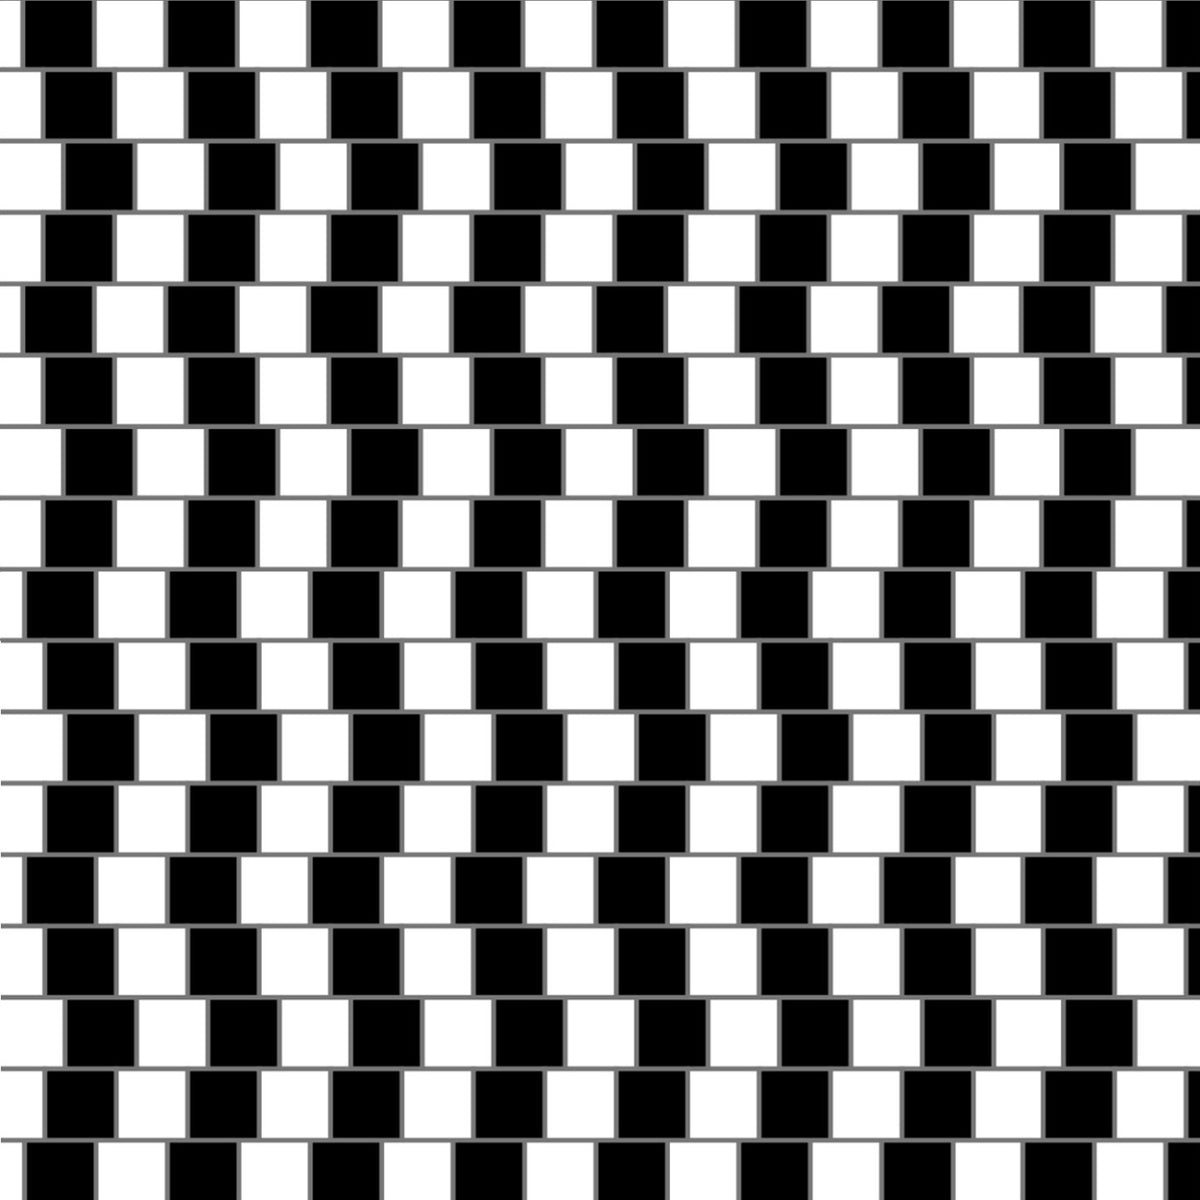 Optical illusions explained